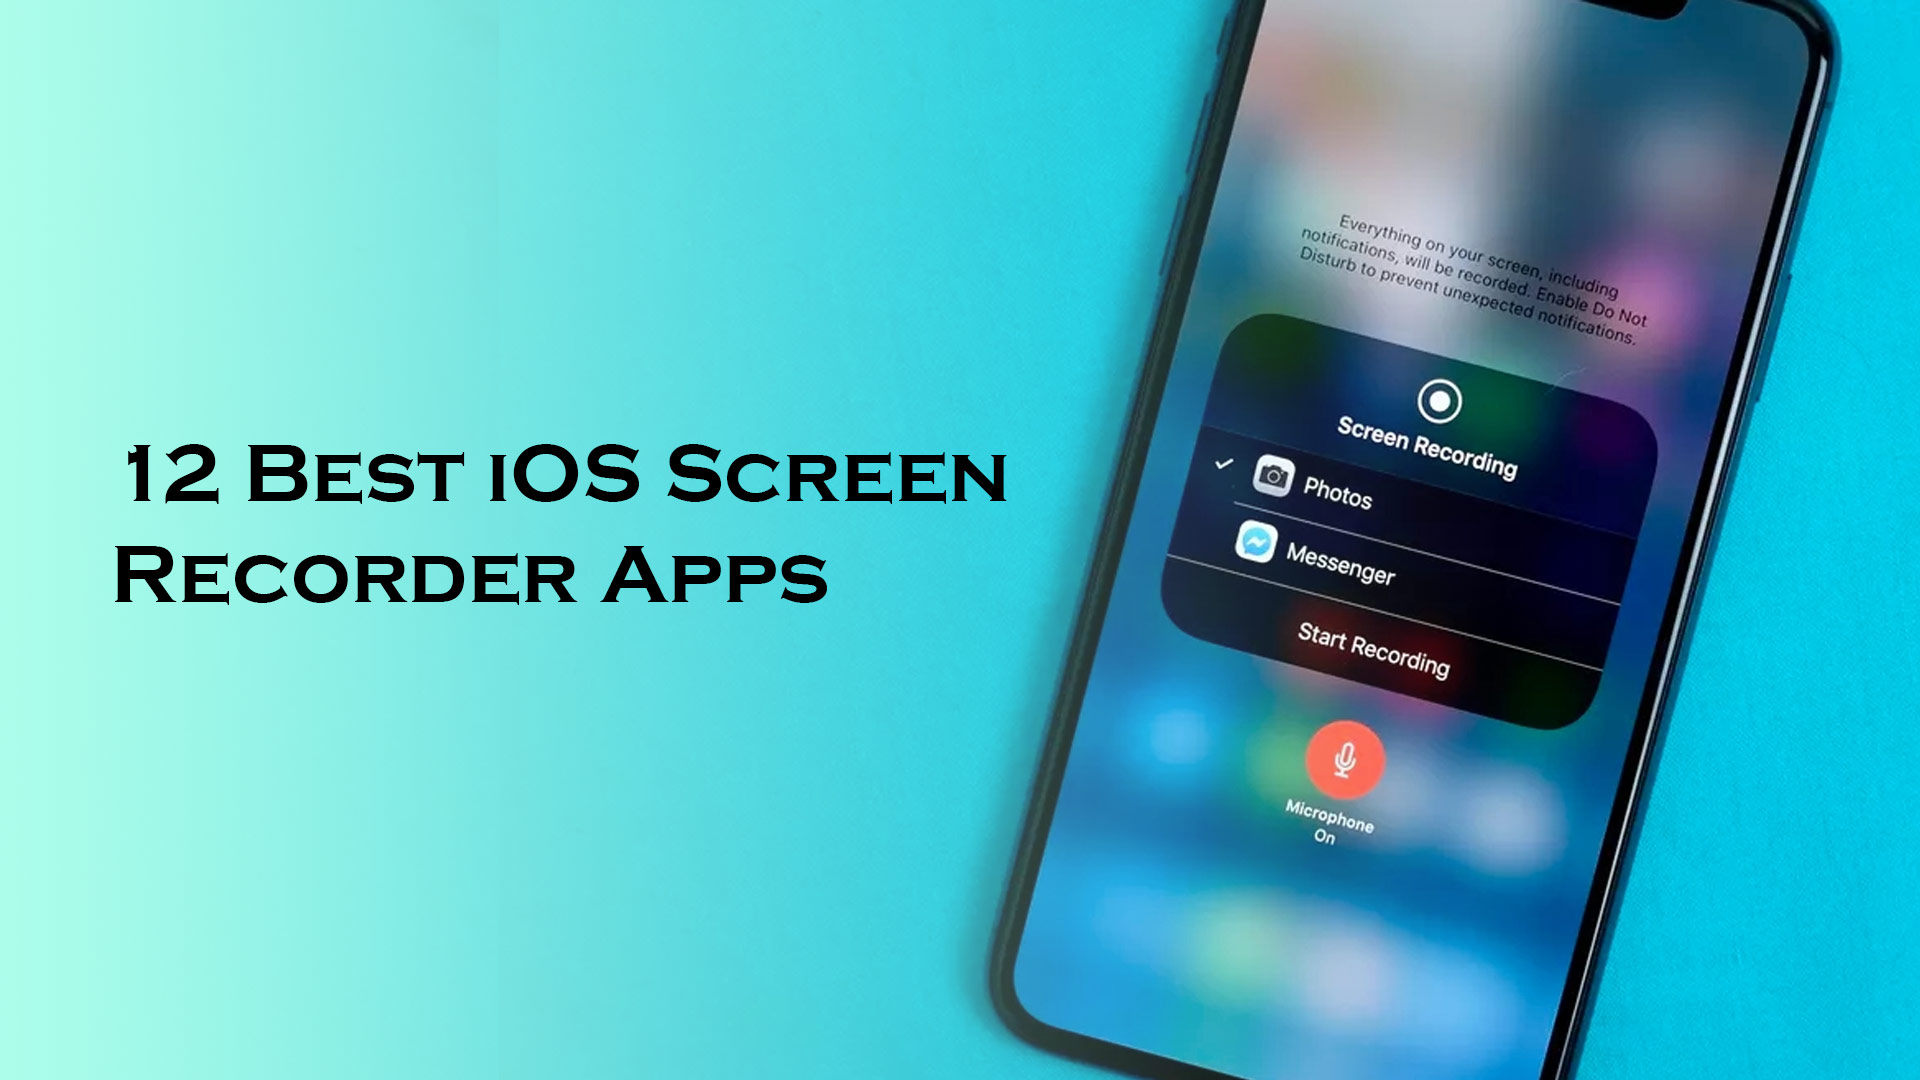 12 Best iOS Screen Recorder Apps to Record your iPhone and iPad